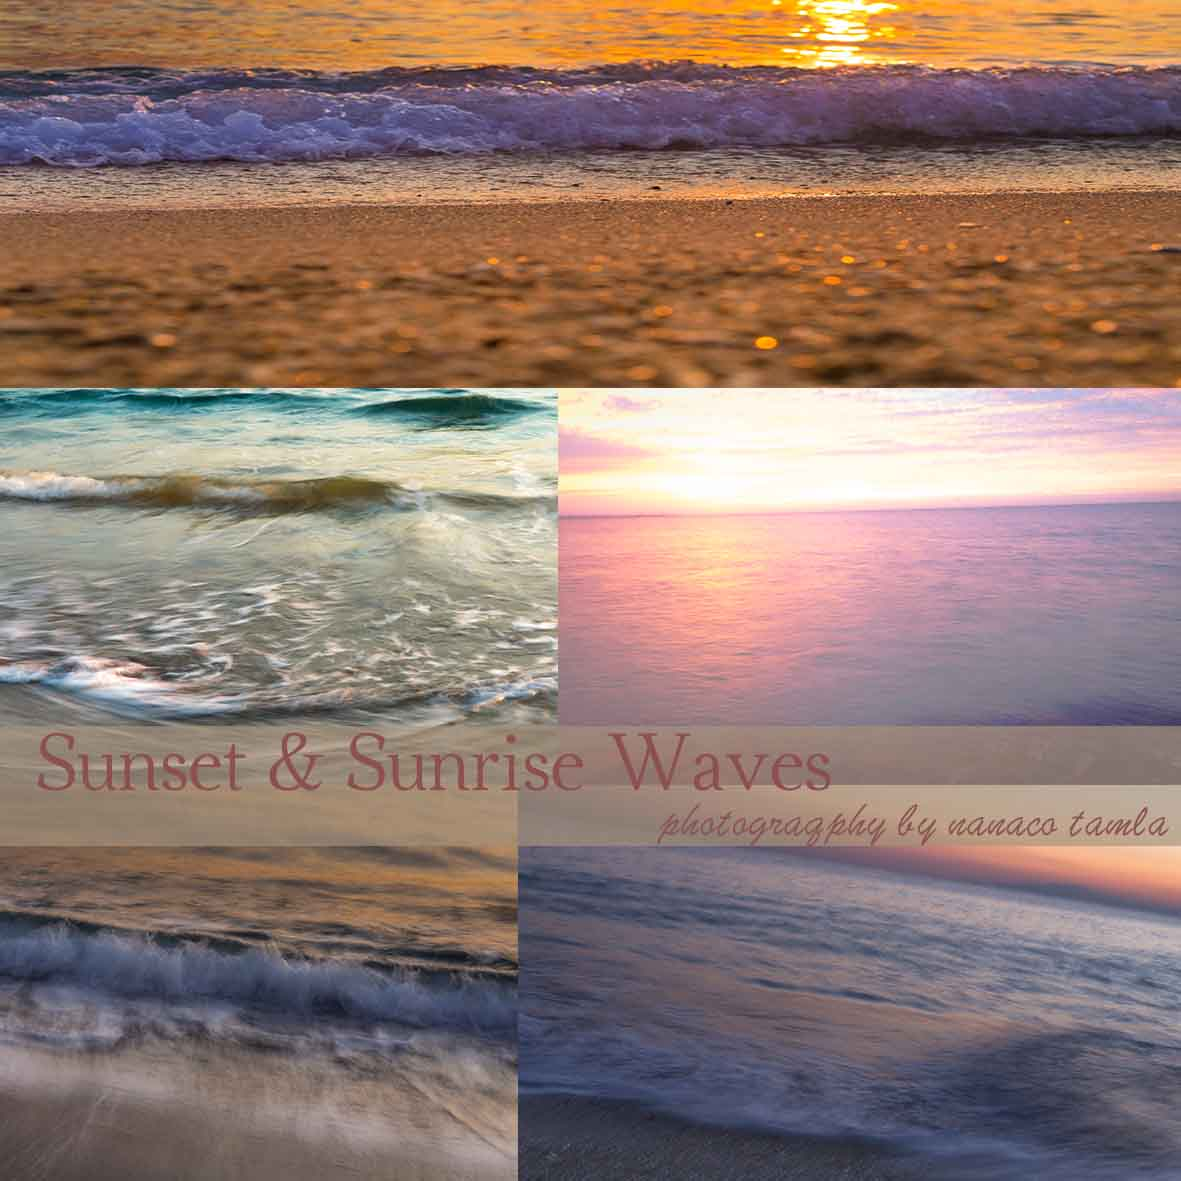 sunset & sunrise wavew